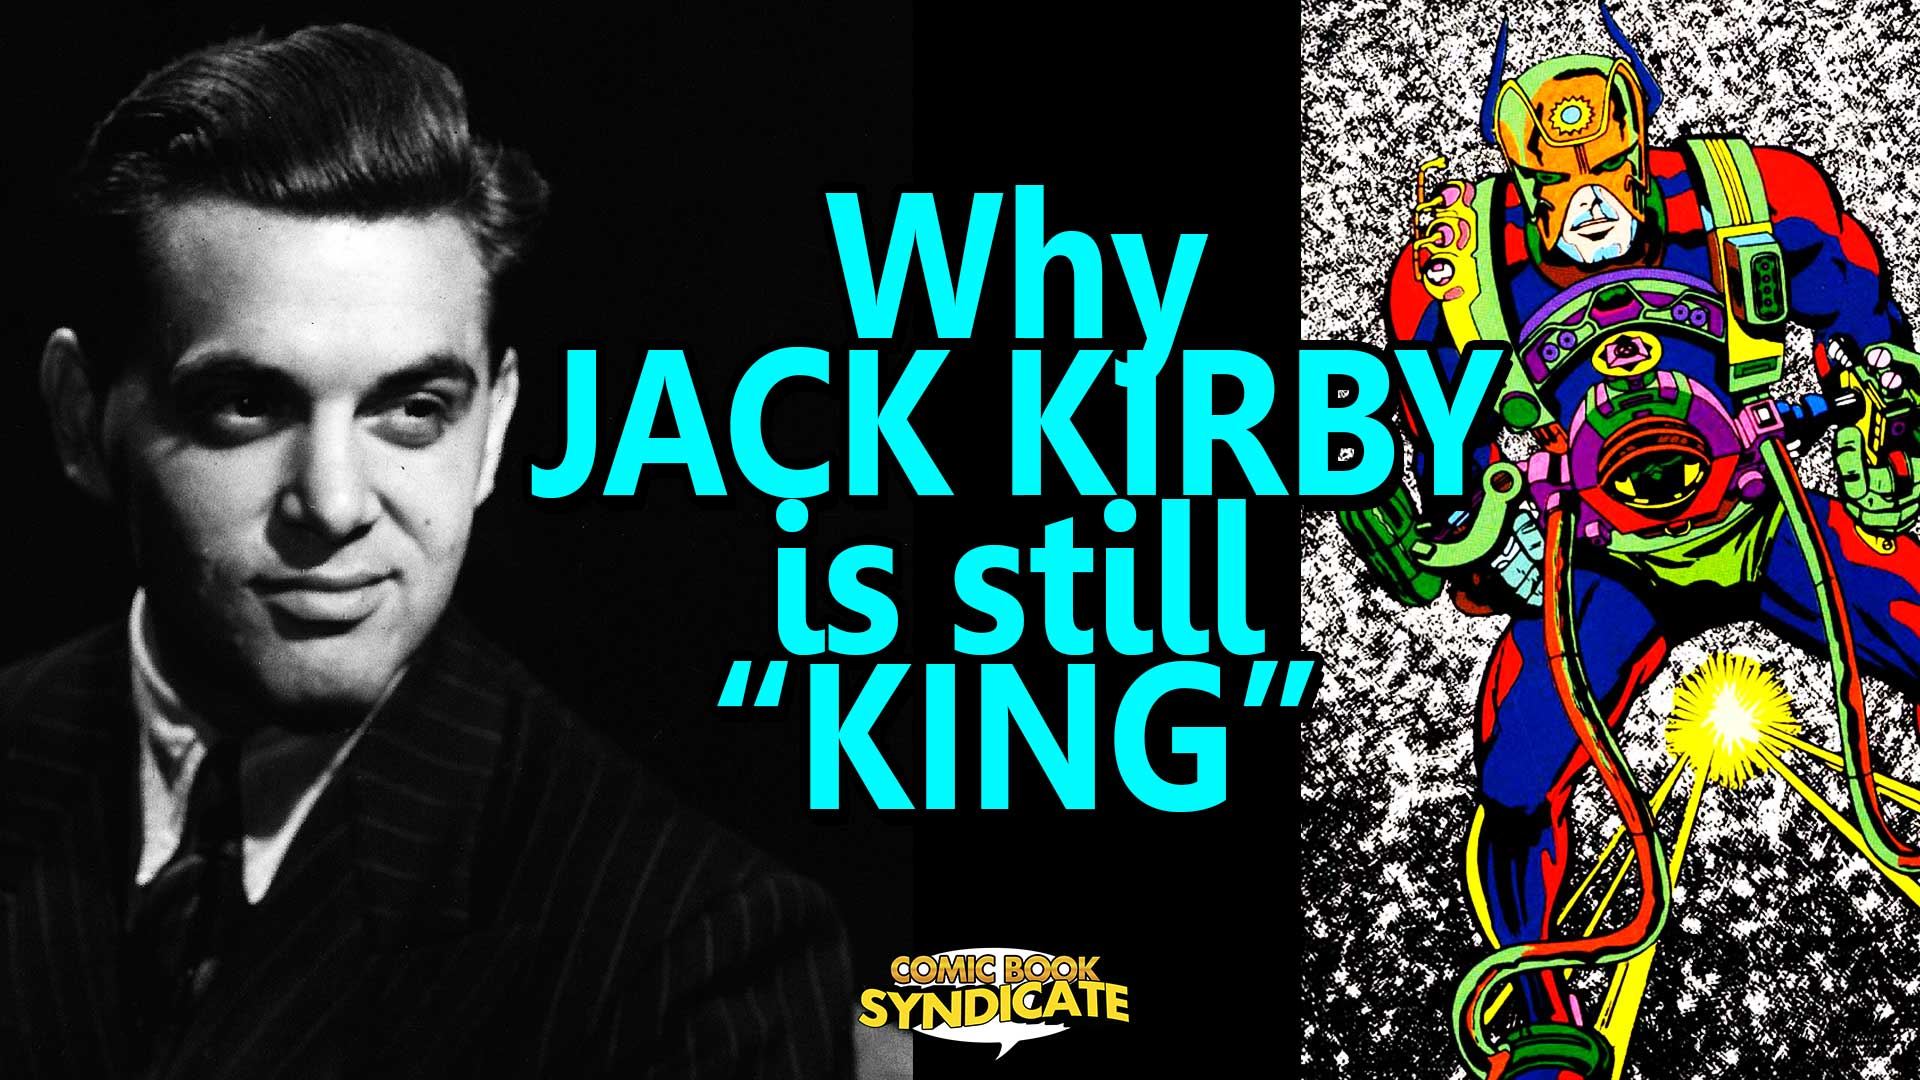 Jack Kirby - The King of Comics